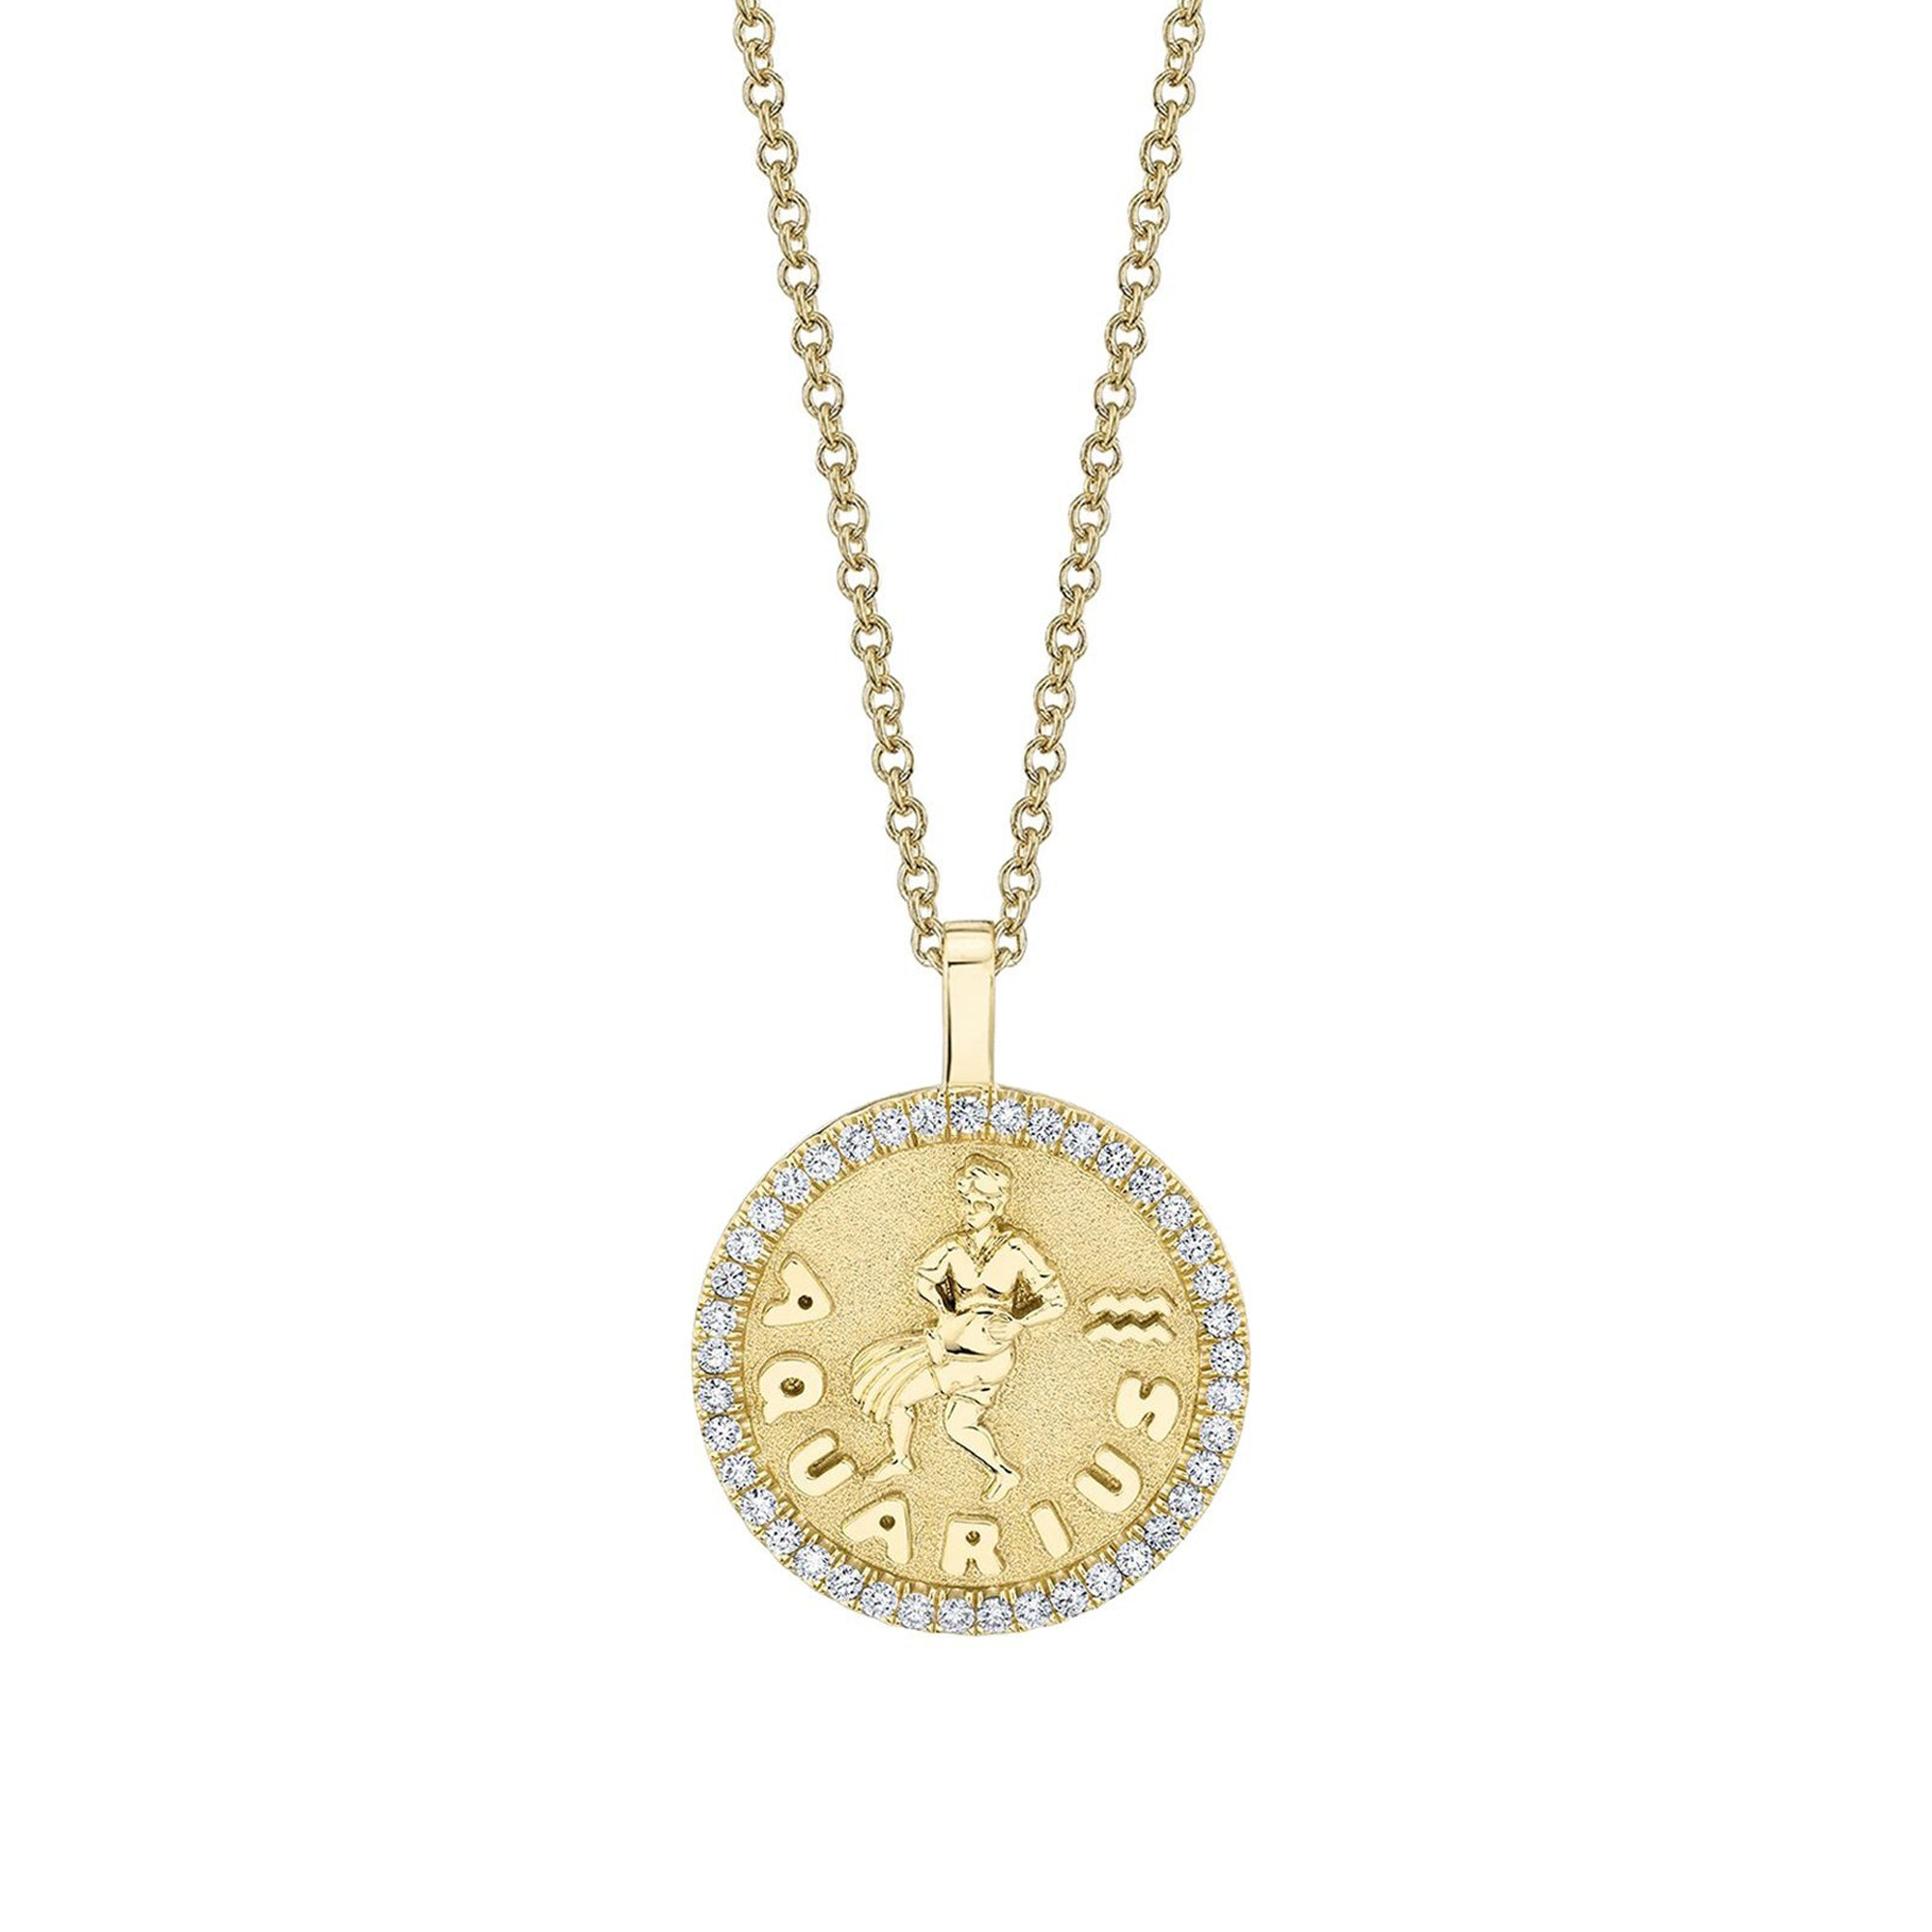 Anita Ko Aquarius Zodiac Coin Pendant With Diamond Frame - Necklaces - Broken English Jewelry